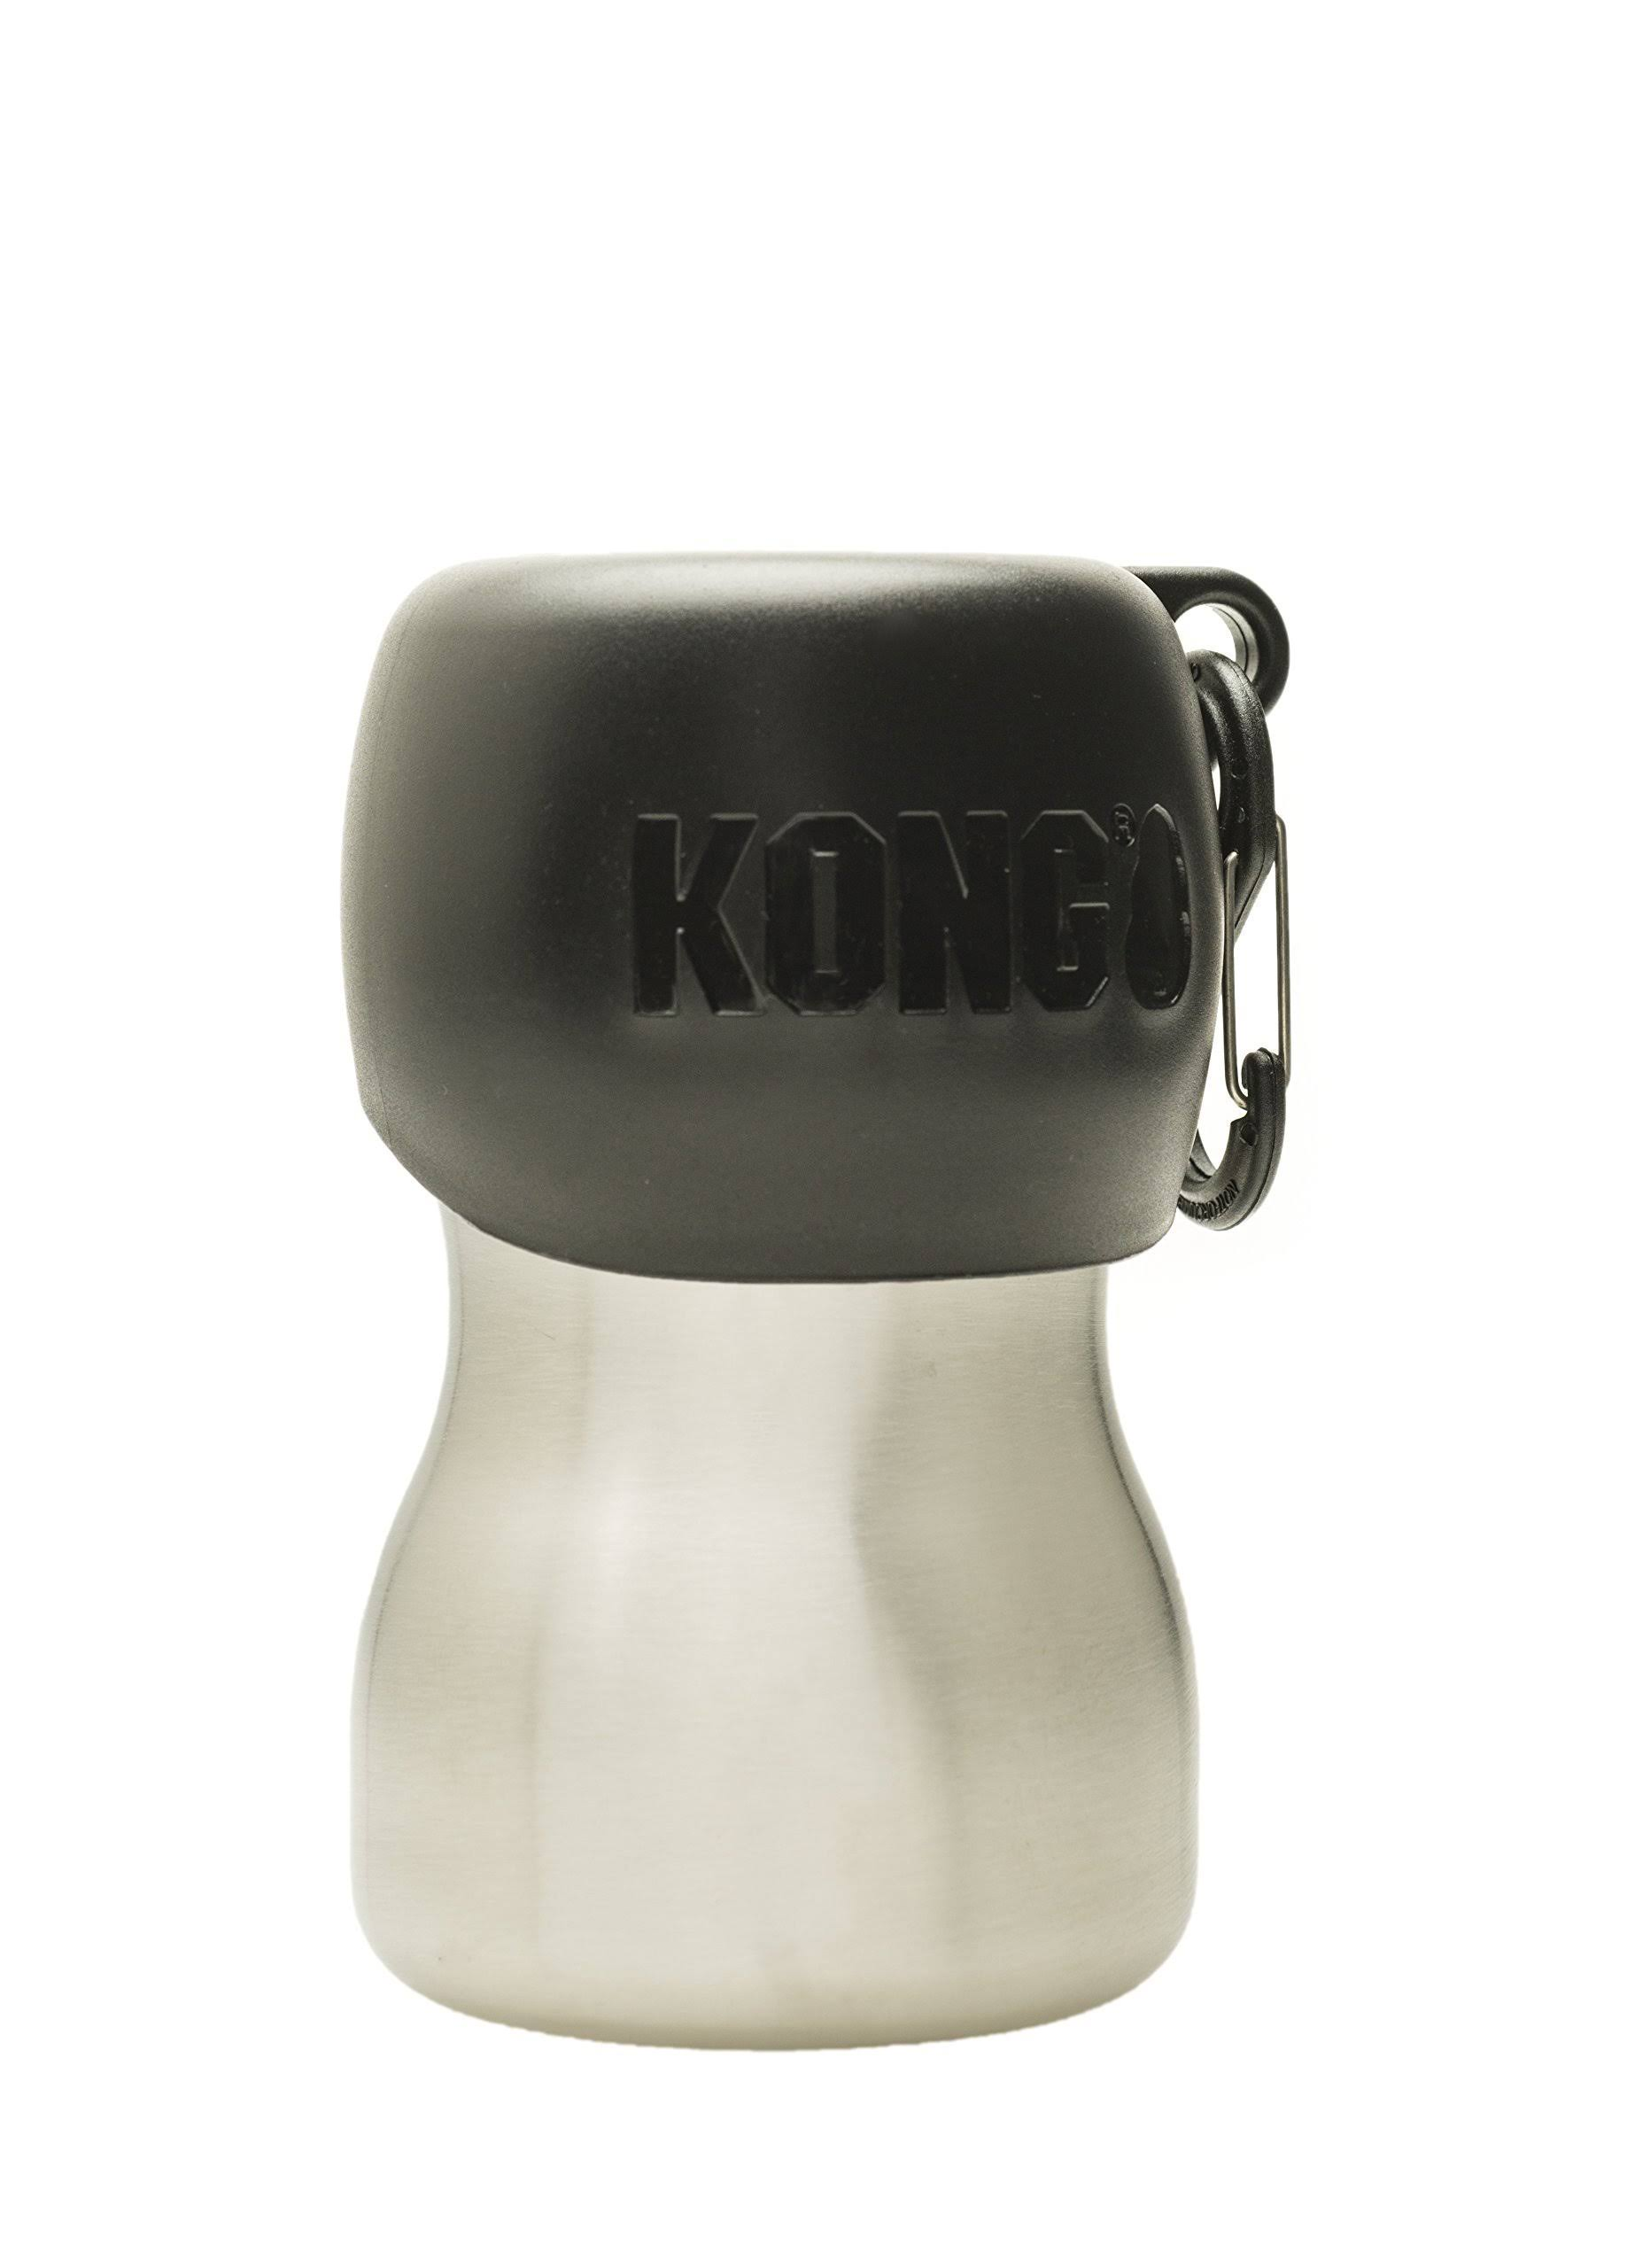 Kong H2O Stainless Steel Dog Water Bottle, 9.5-oz, Black